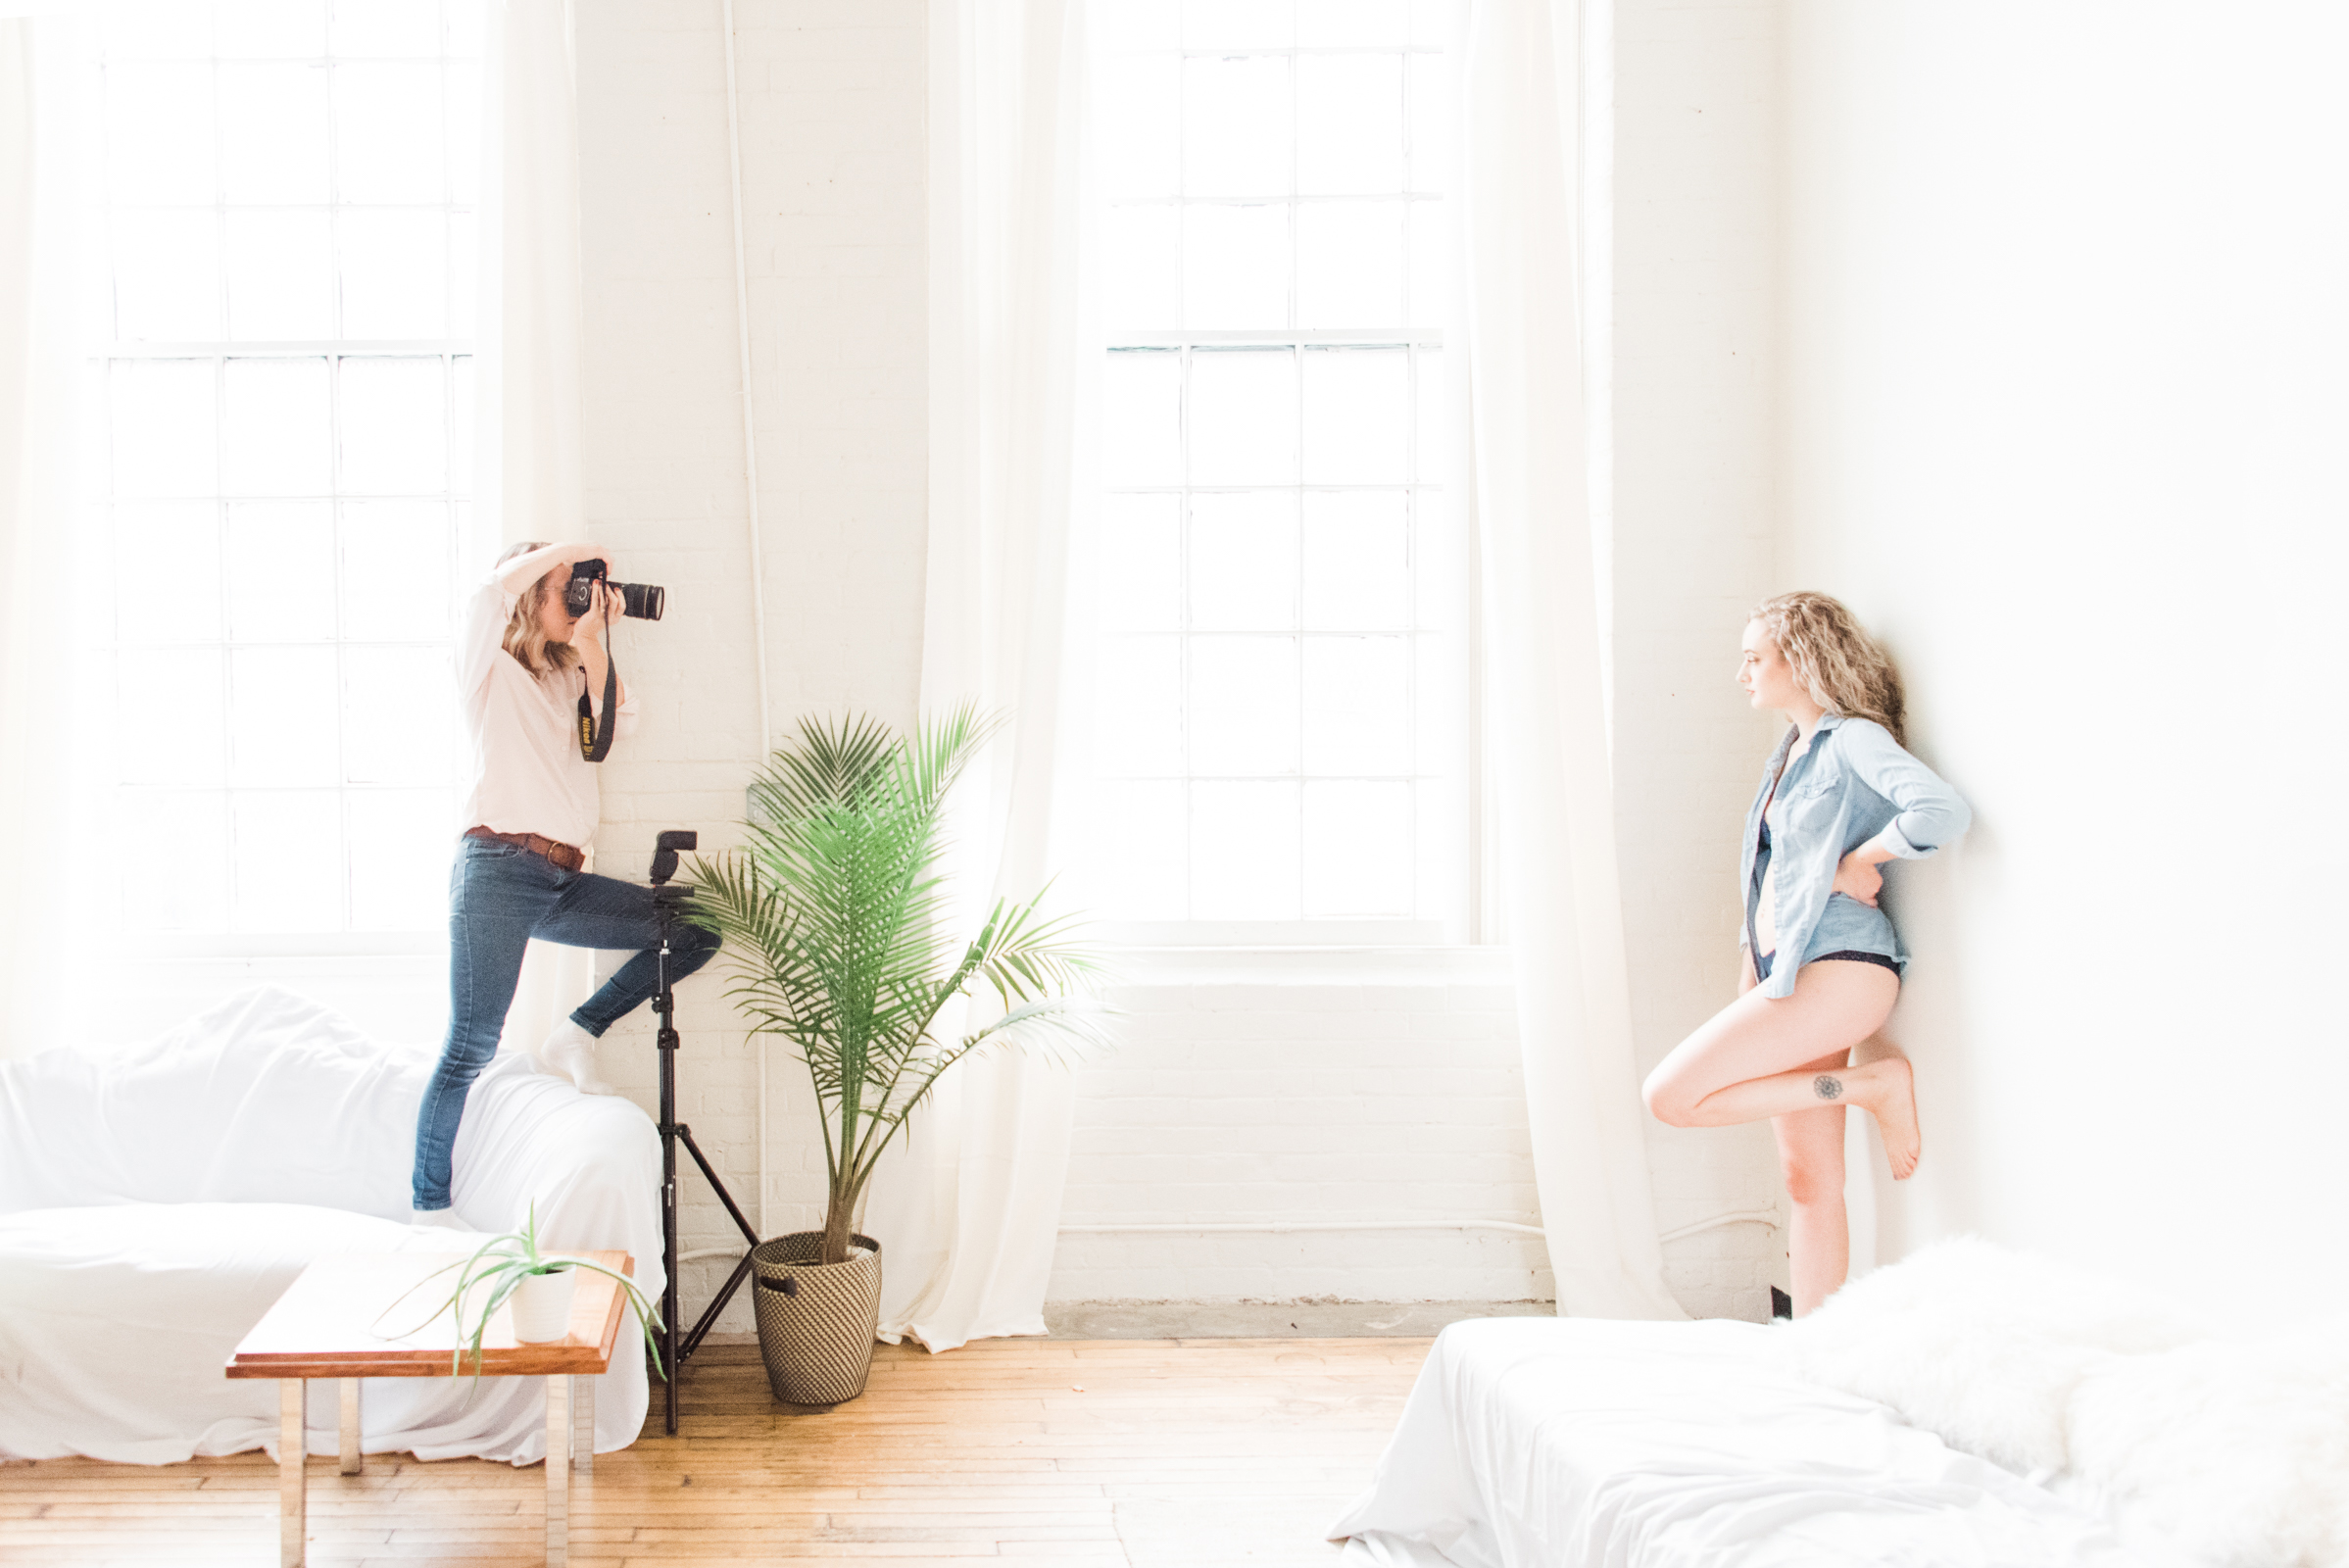 a boudoir photographer shoots her client, photographed as part of a behind the scenes brand shoot by jamie bannon photography.